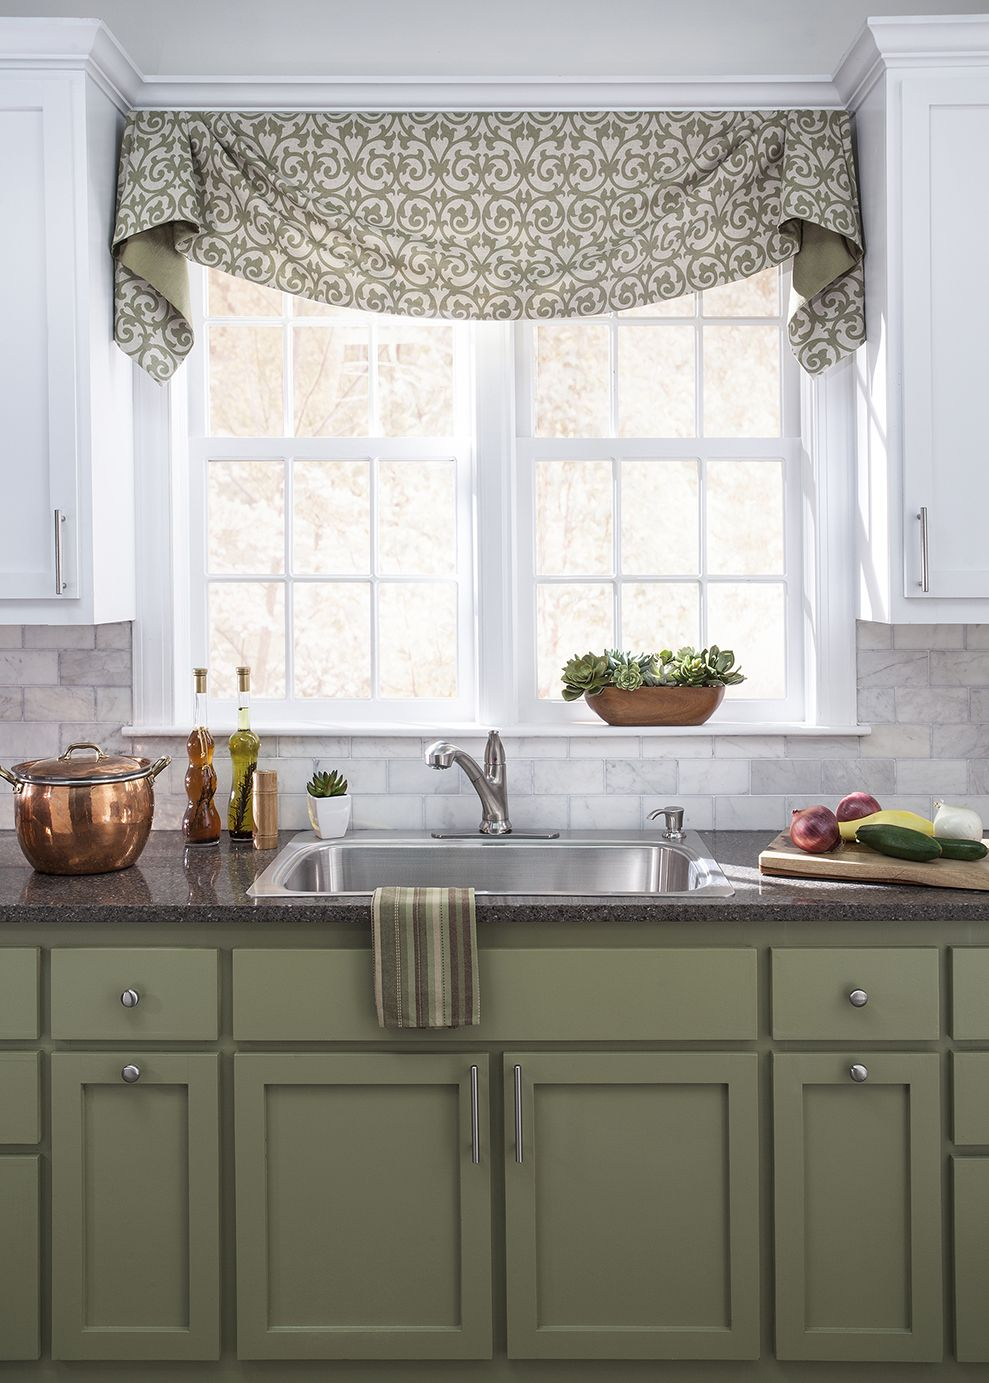 Ordinaire Flowing Fabrics And Coordinating Colors Are A Win In This Gorgeous #trendy  Kitchen.